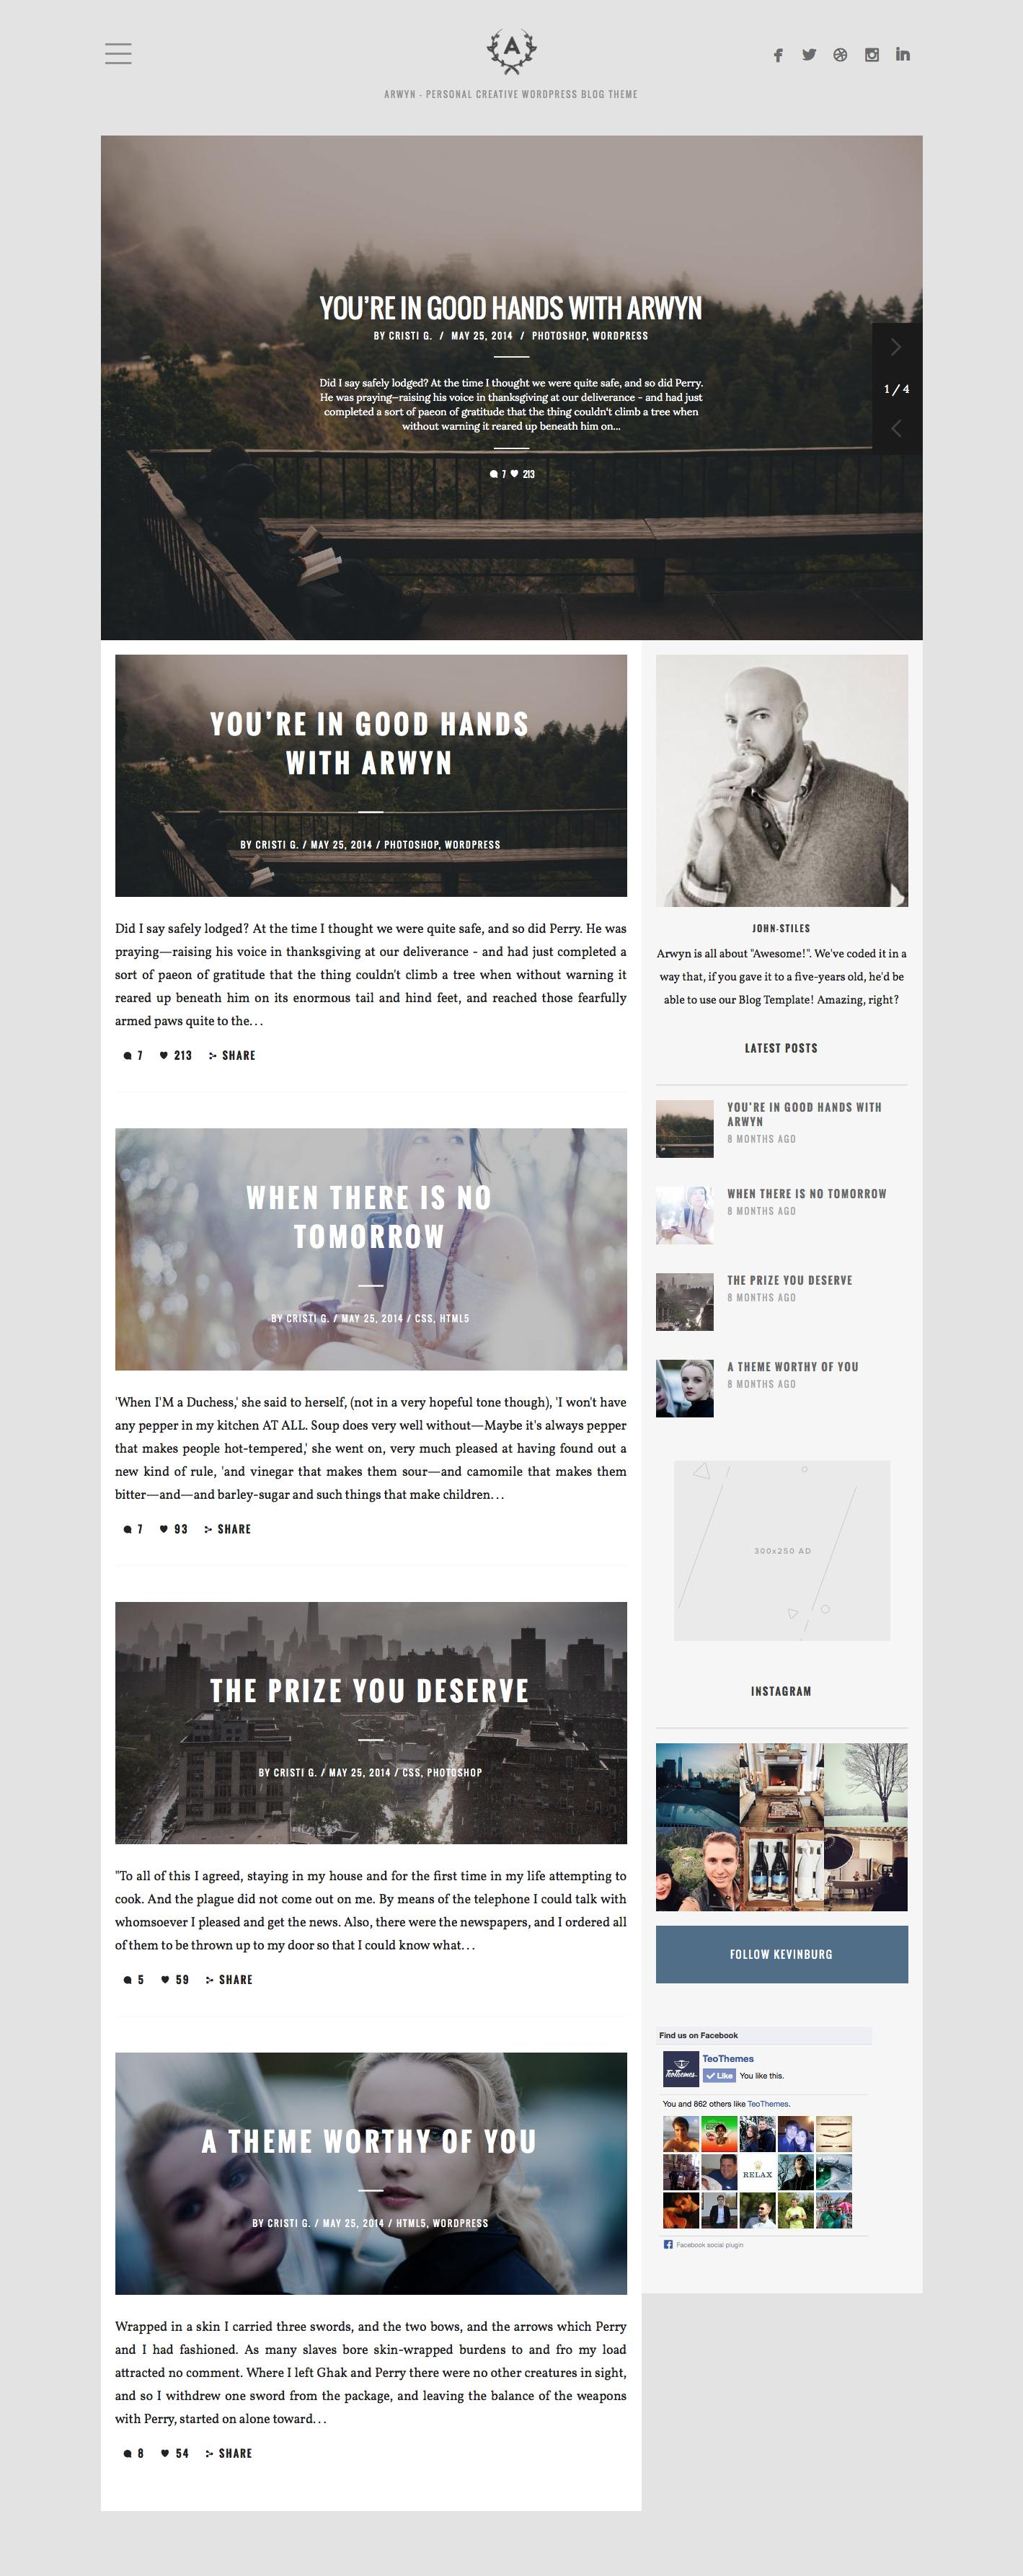 WordPress Theme Installation + Sample Data Setup by FinalDestiny - 69072